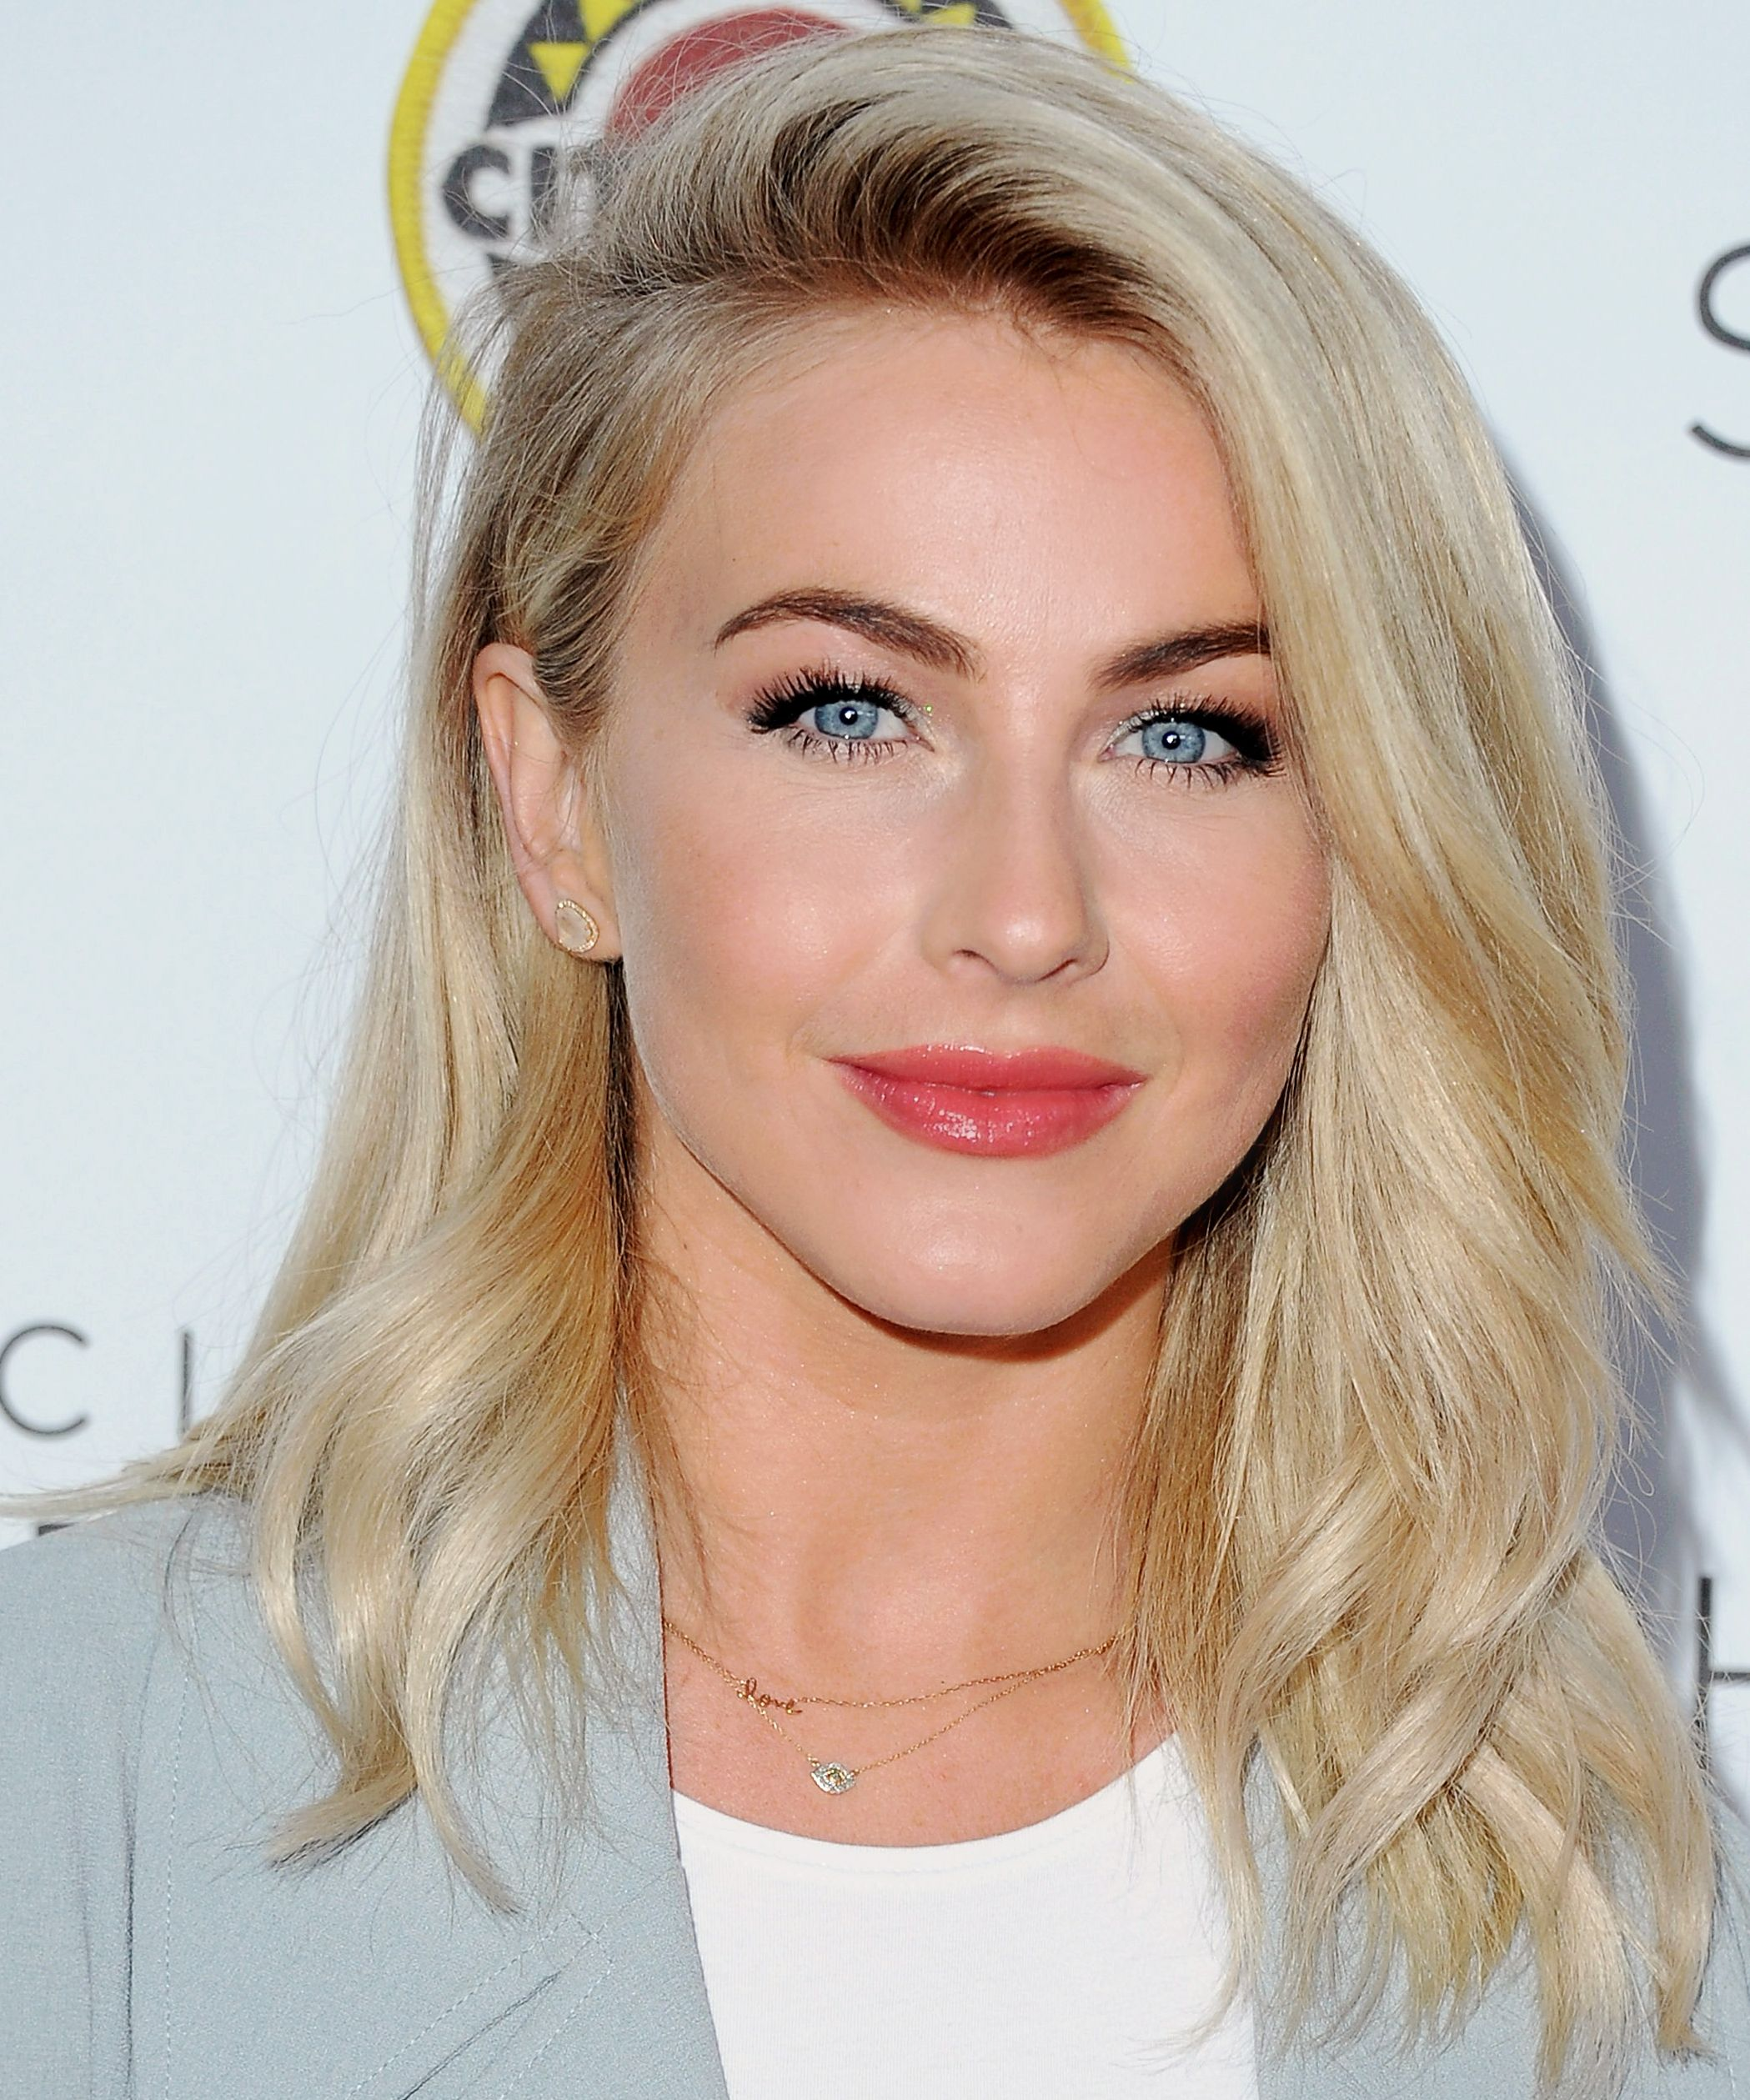 The Best Blonde Hair For Your Skin Tone Pale Skin Hair Color Cool Blonde Hair Hair Color For Fair Skin